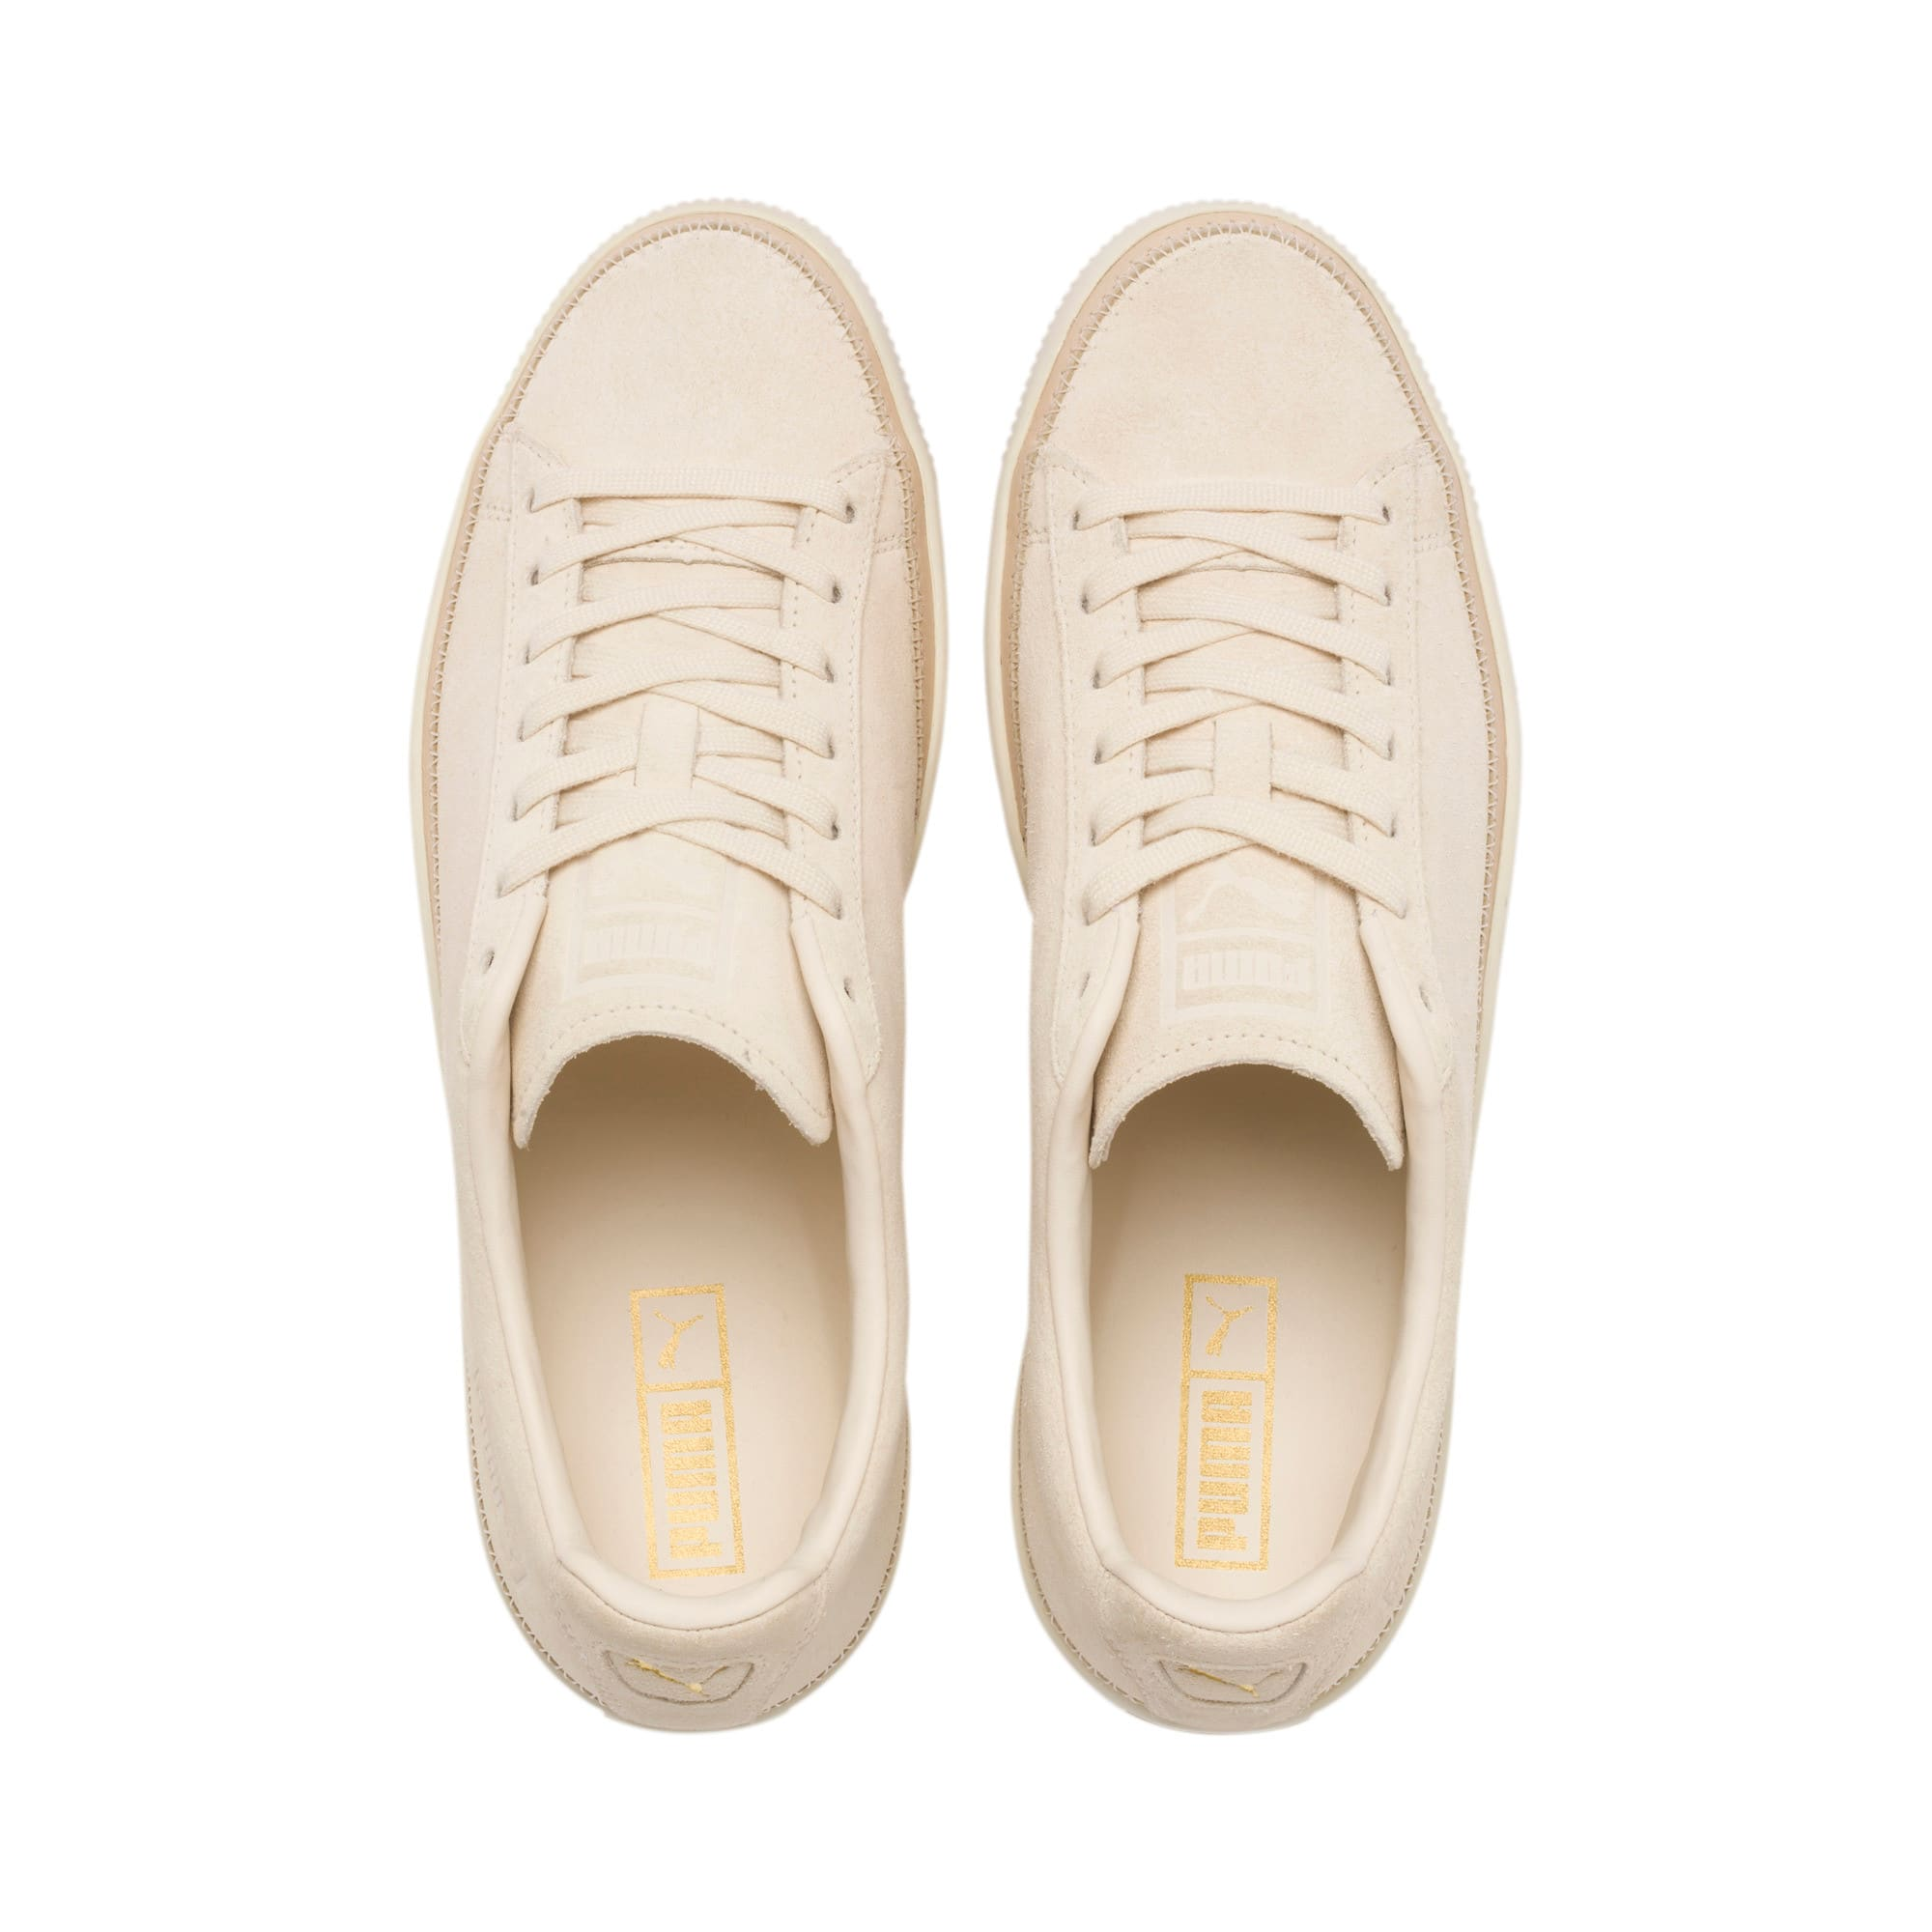 Thumbnail 7 of Suede Trim PRM Sneakers, White Smoke-Whisper White, medium